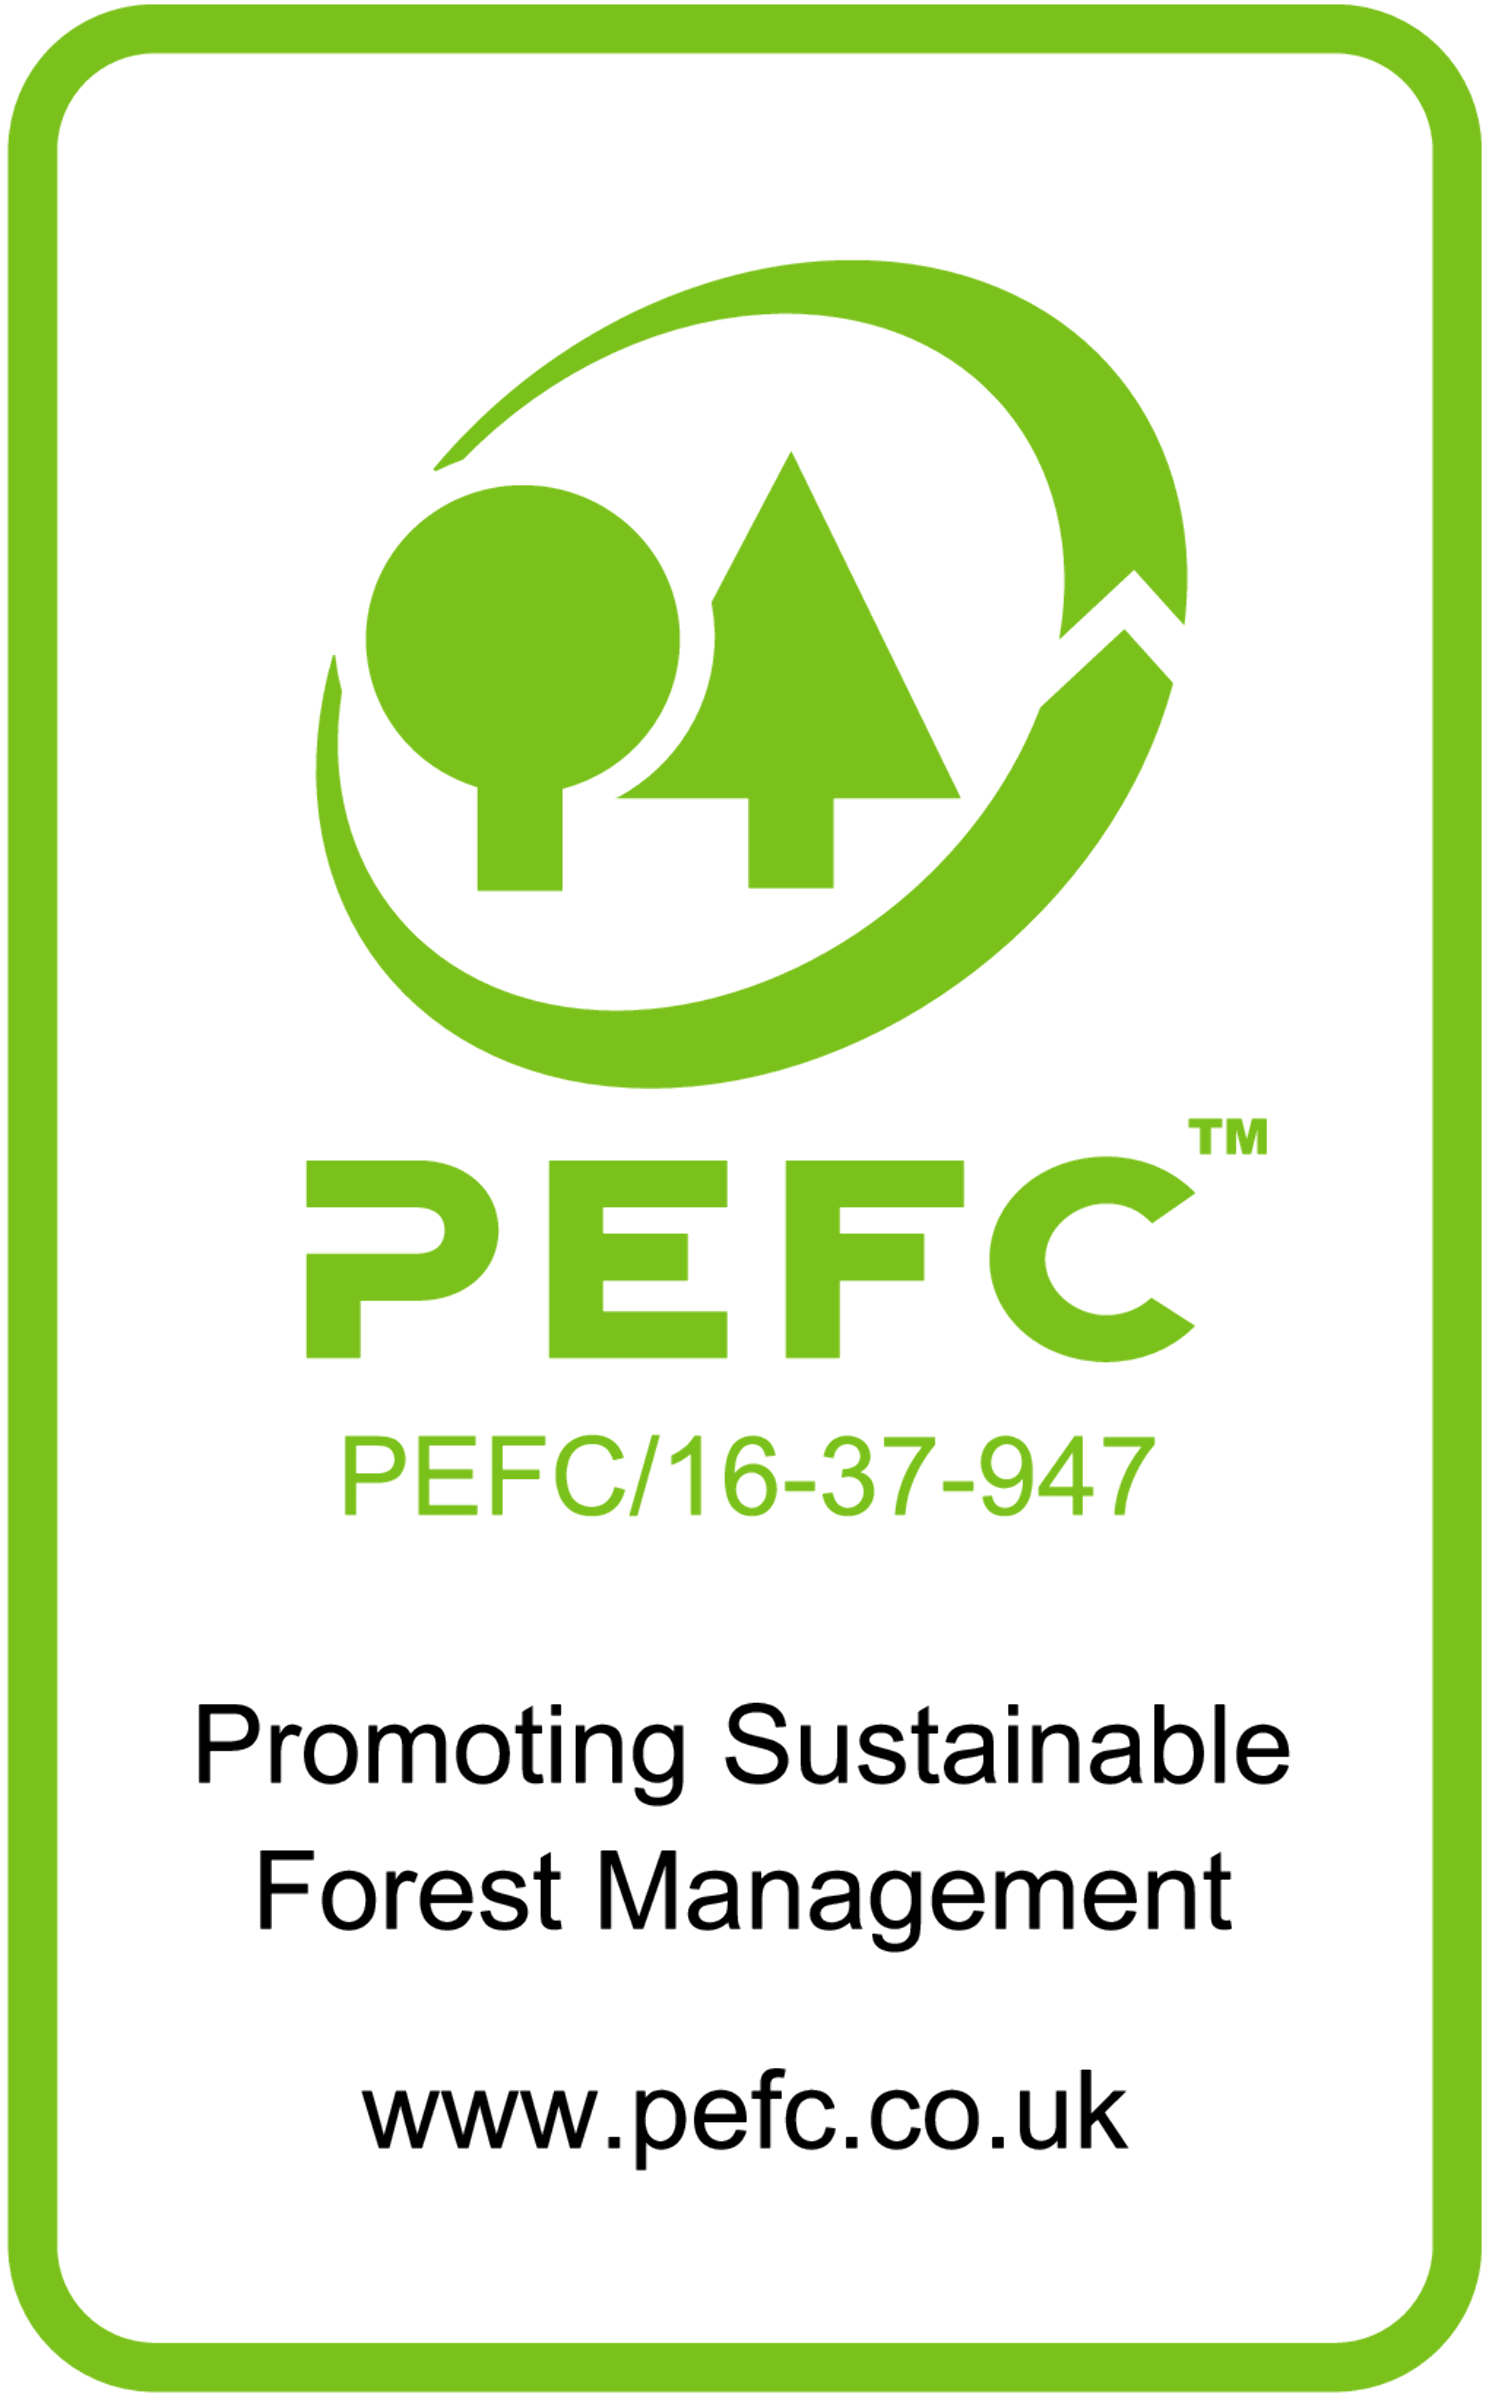 https://hardwoodsgroup.com/wp-content/uploads/2019/11/PEFC-Certified-1.png